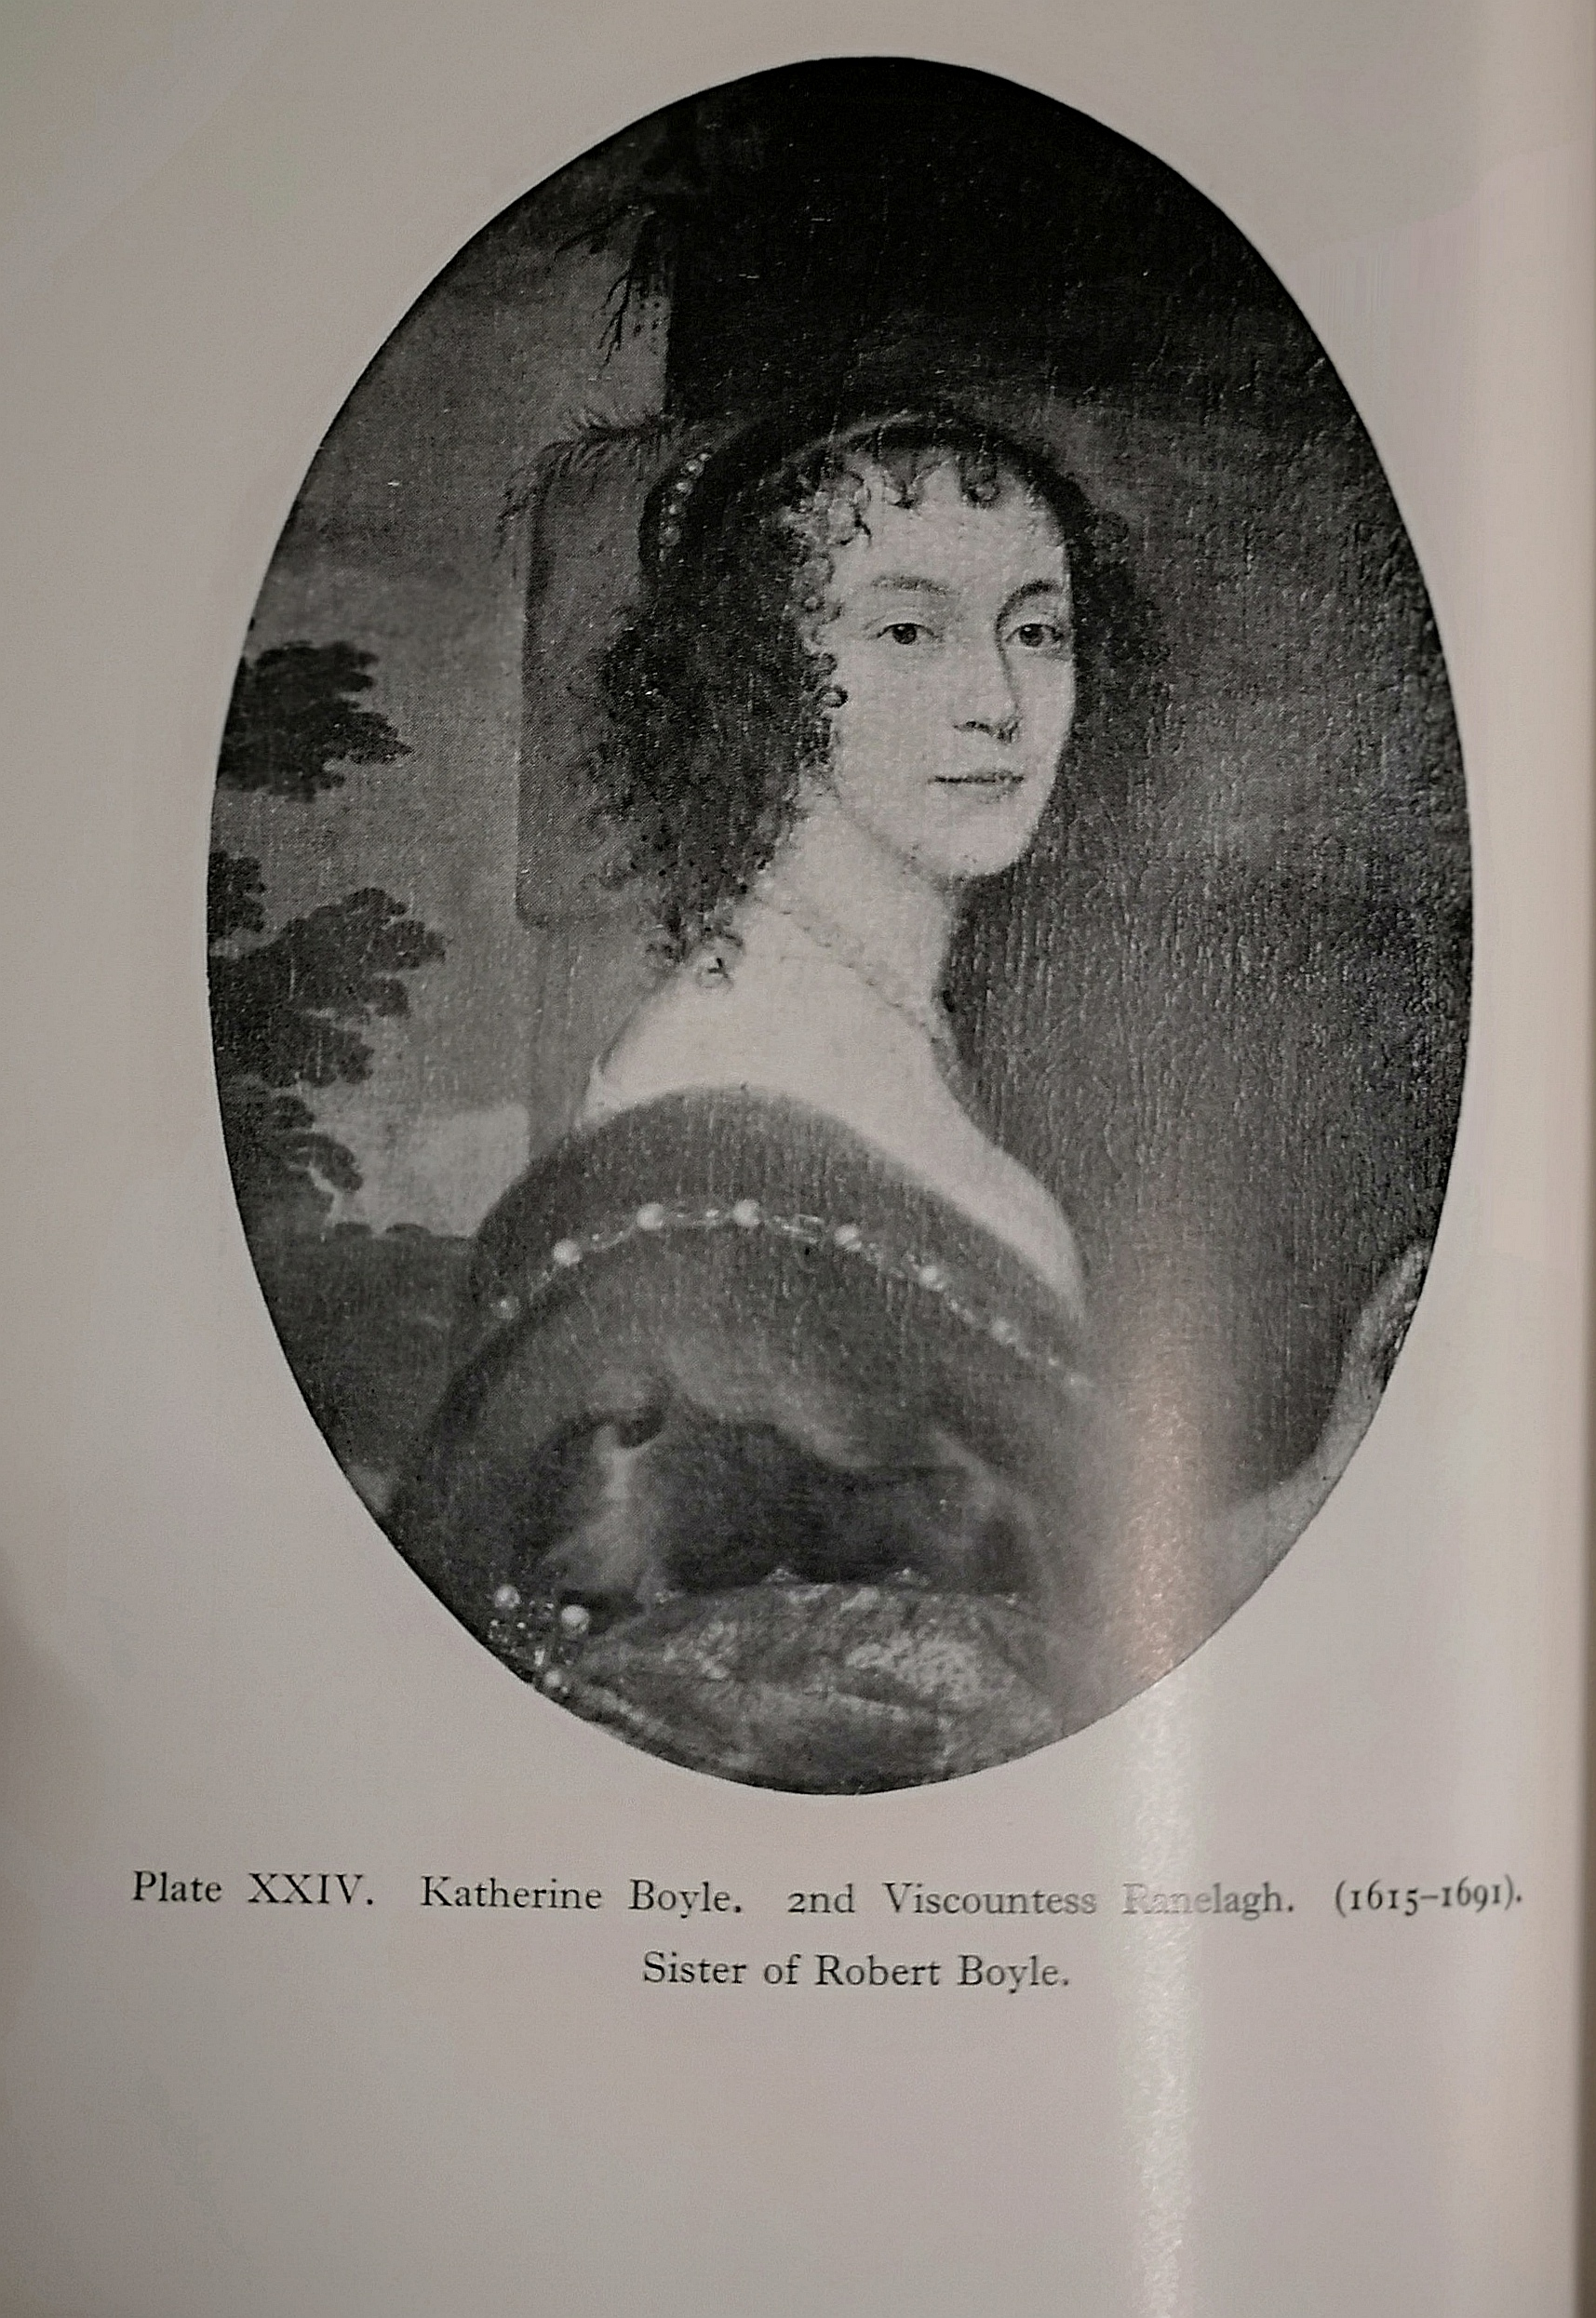 Lady Katherine Jones née Boyle, Viscountess of Ranelagh